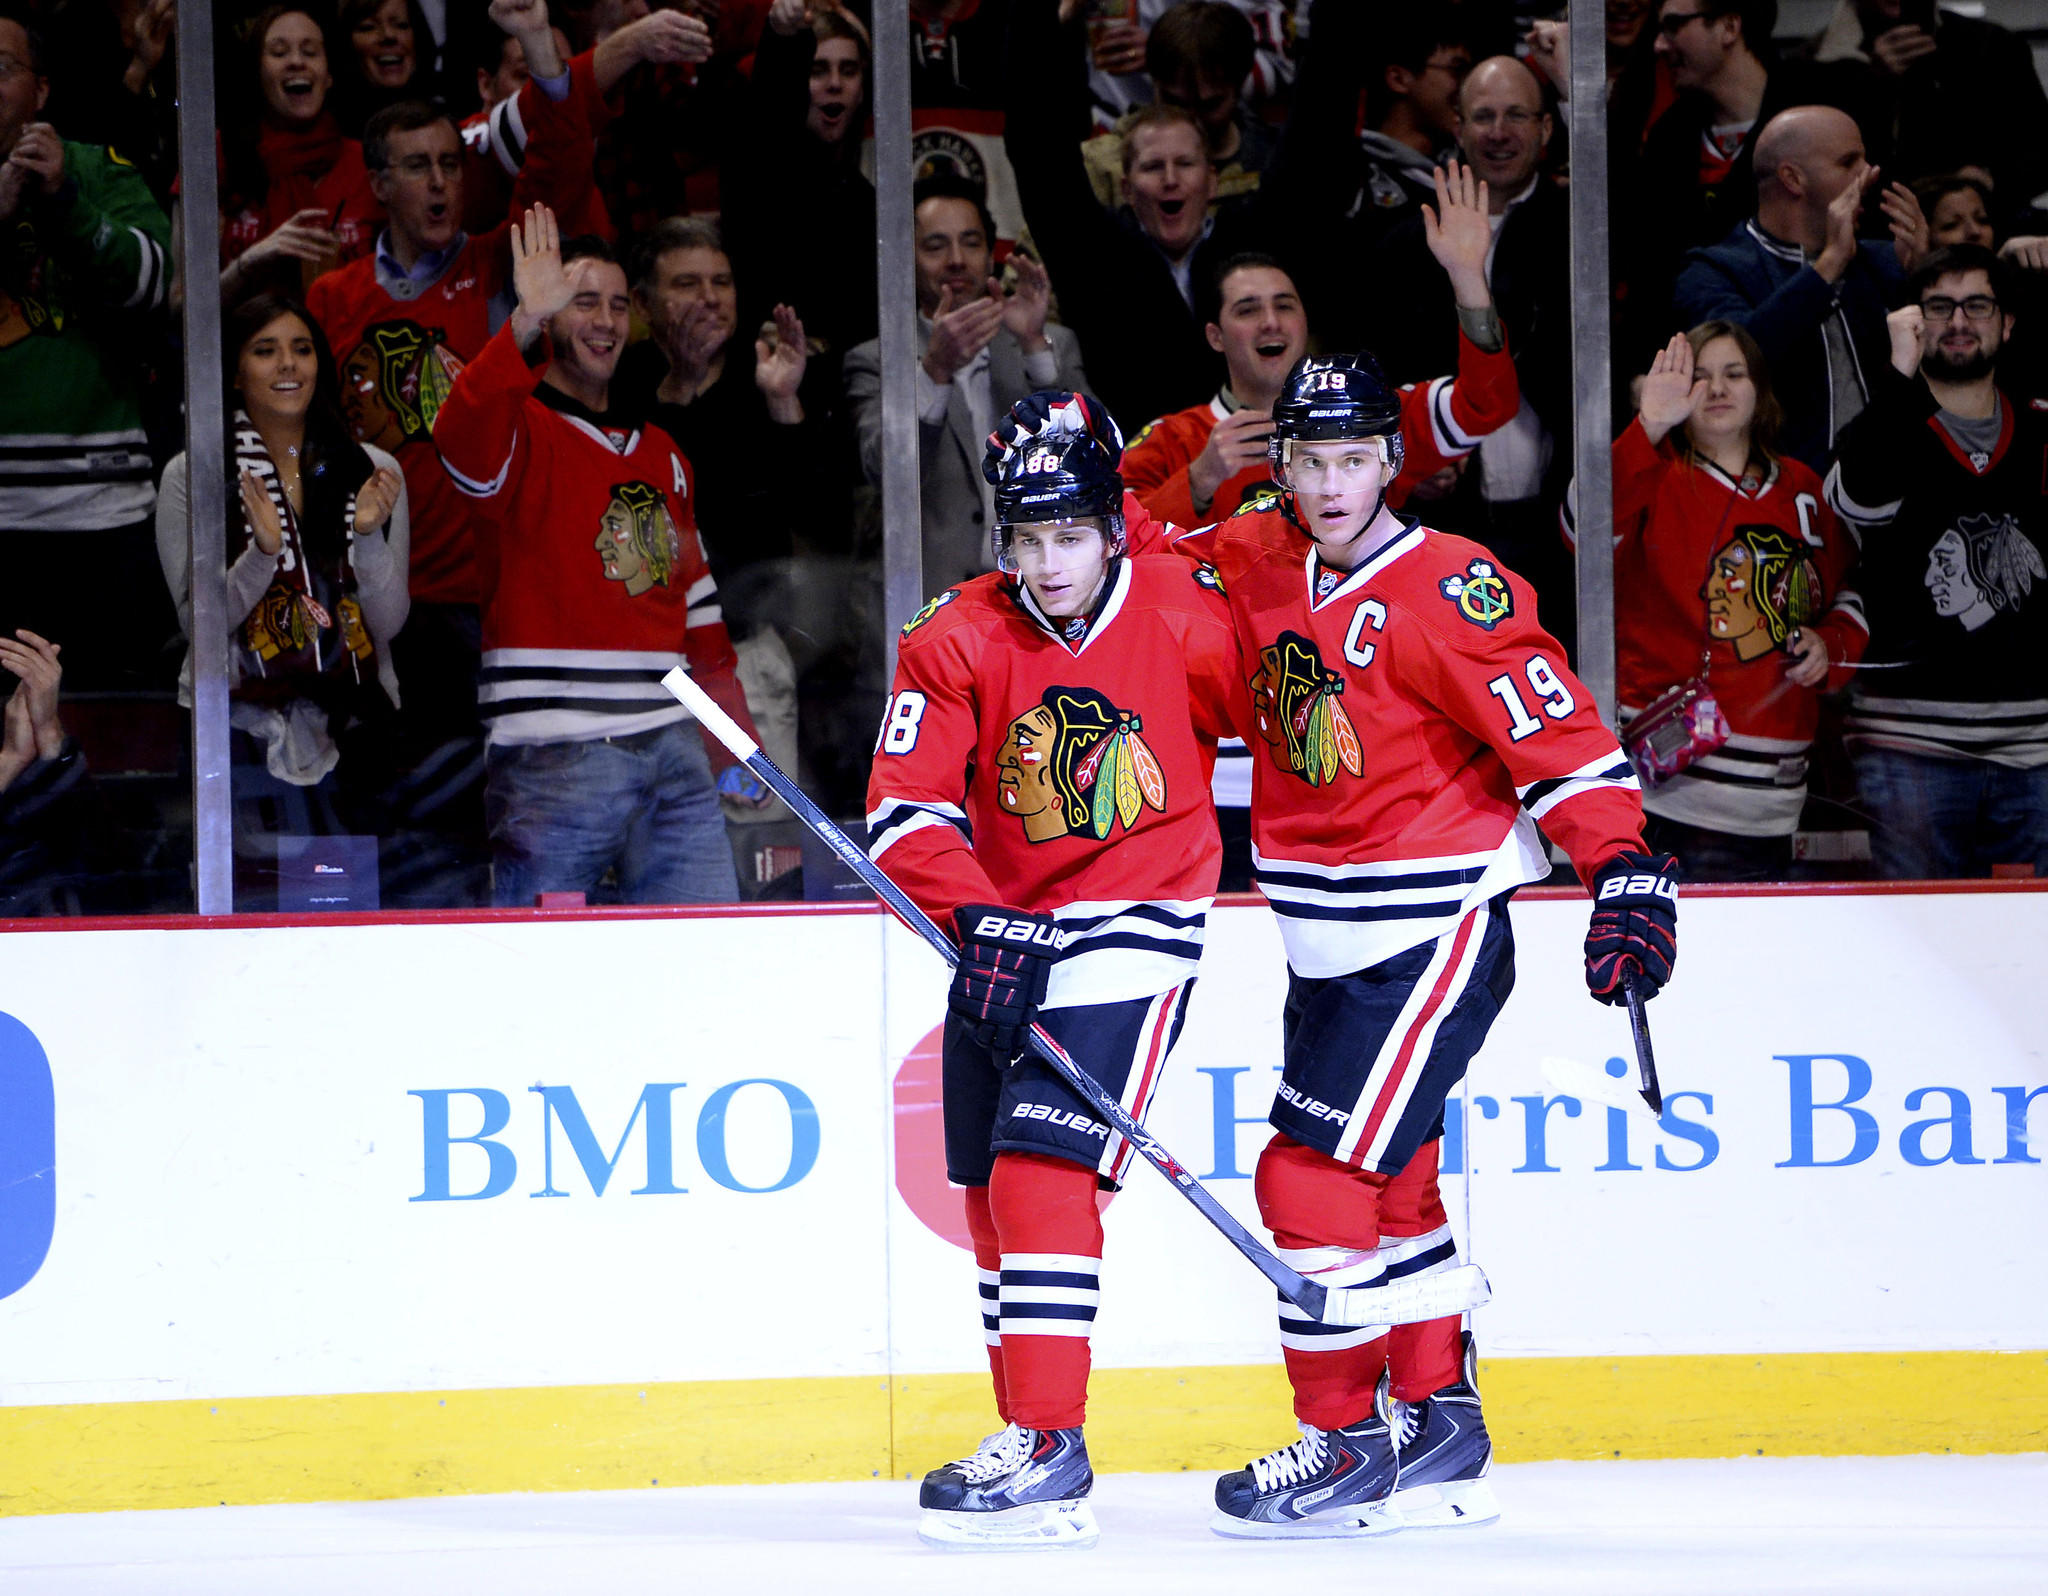 Blackhawks center Jonathan Toews (right) reacts with right wing Patrick Kane (left) after scoring a goal.